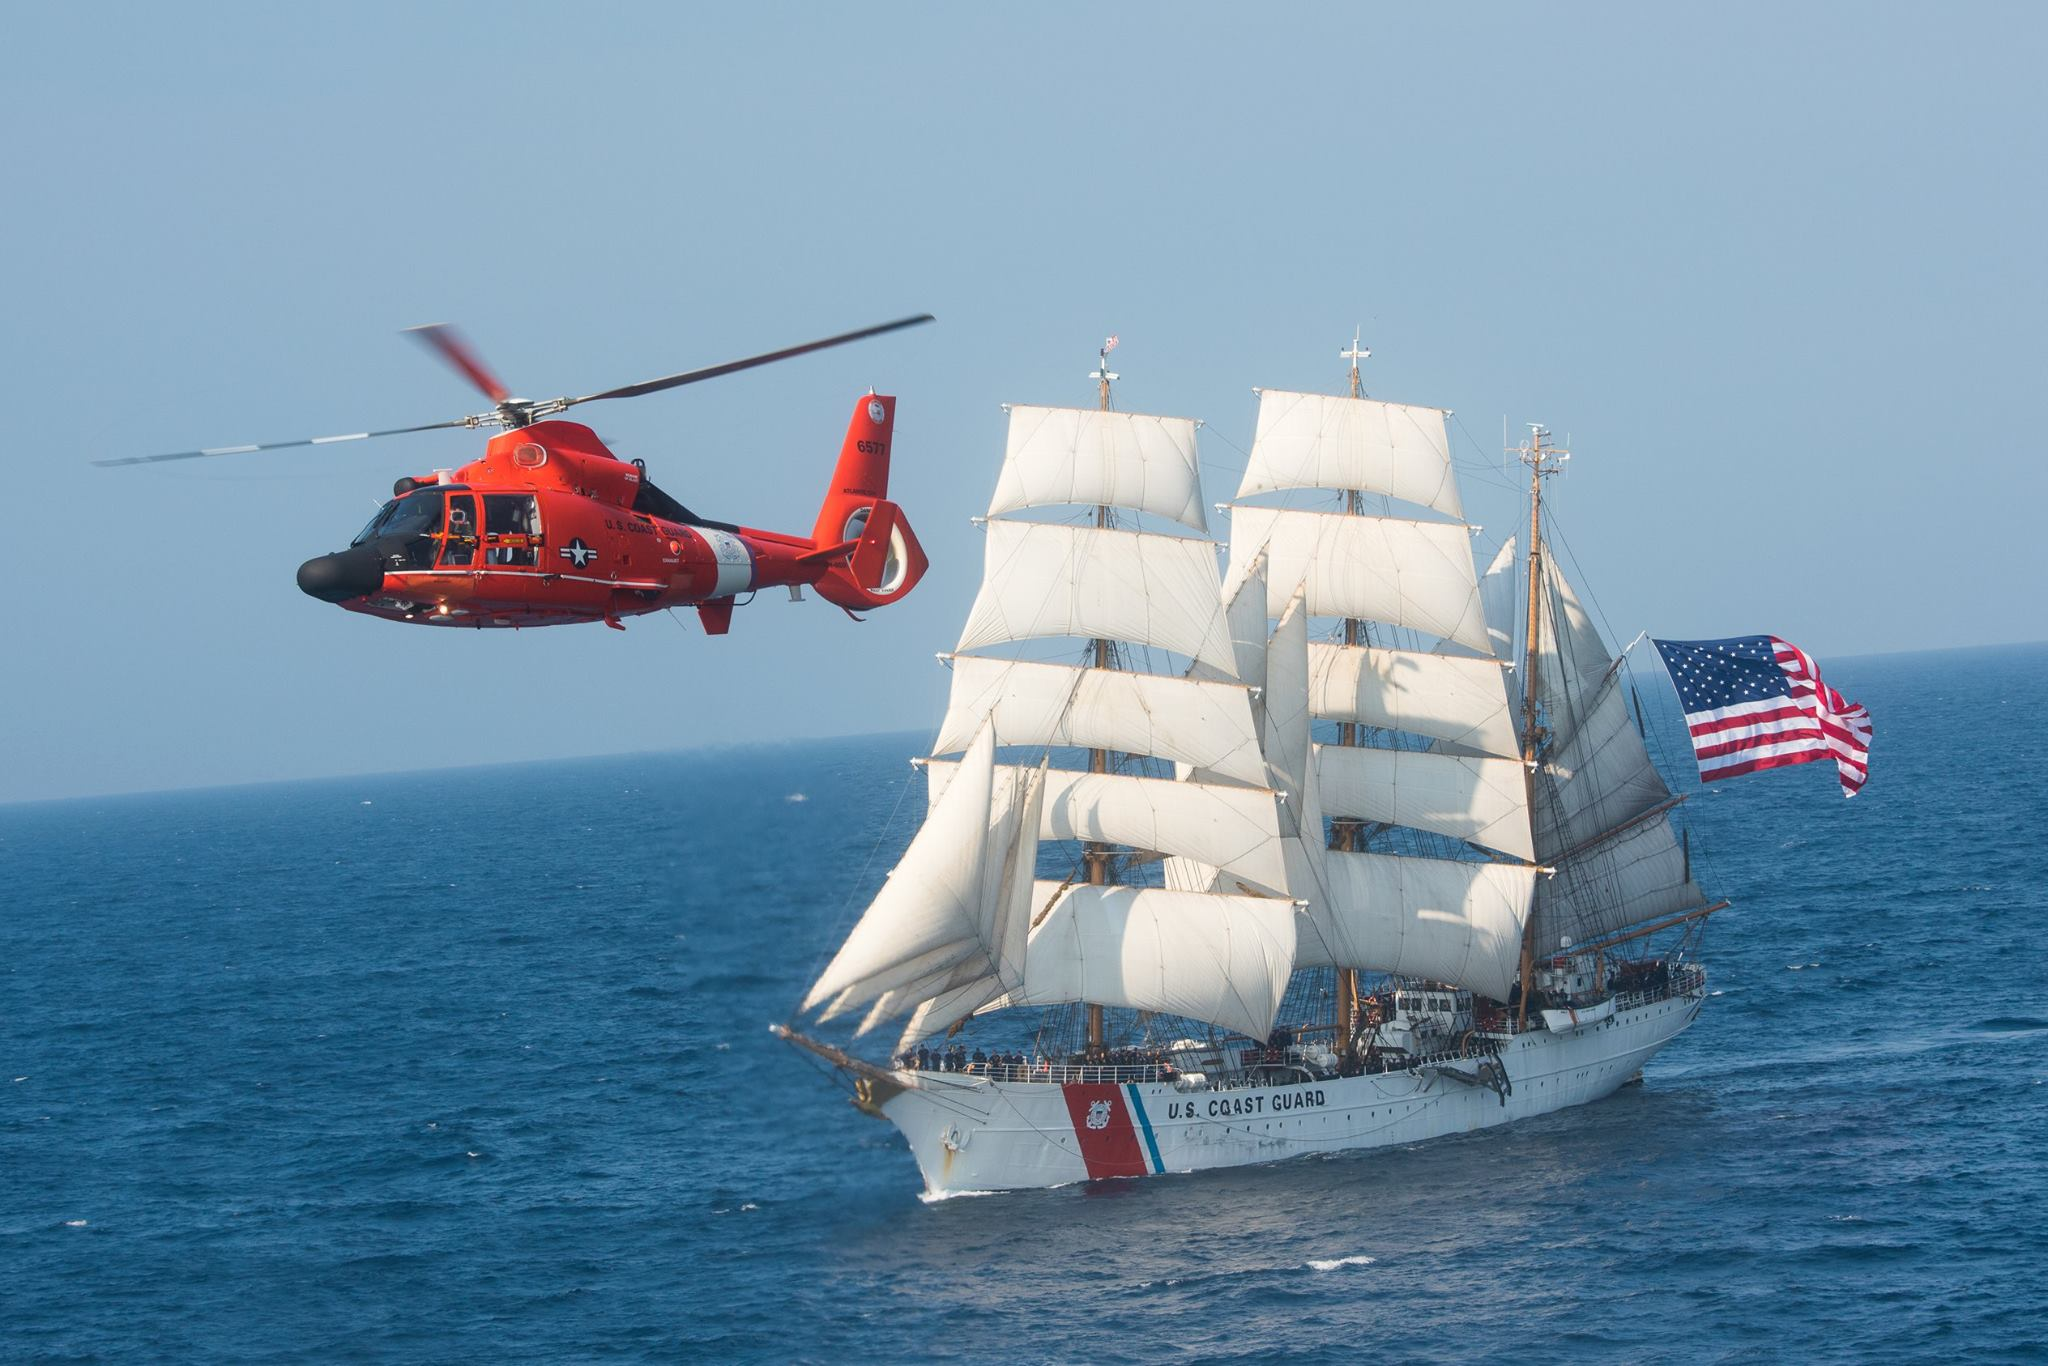 HH-65 Dolphin and USCGC Eagle